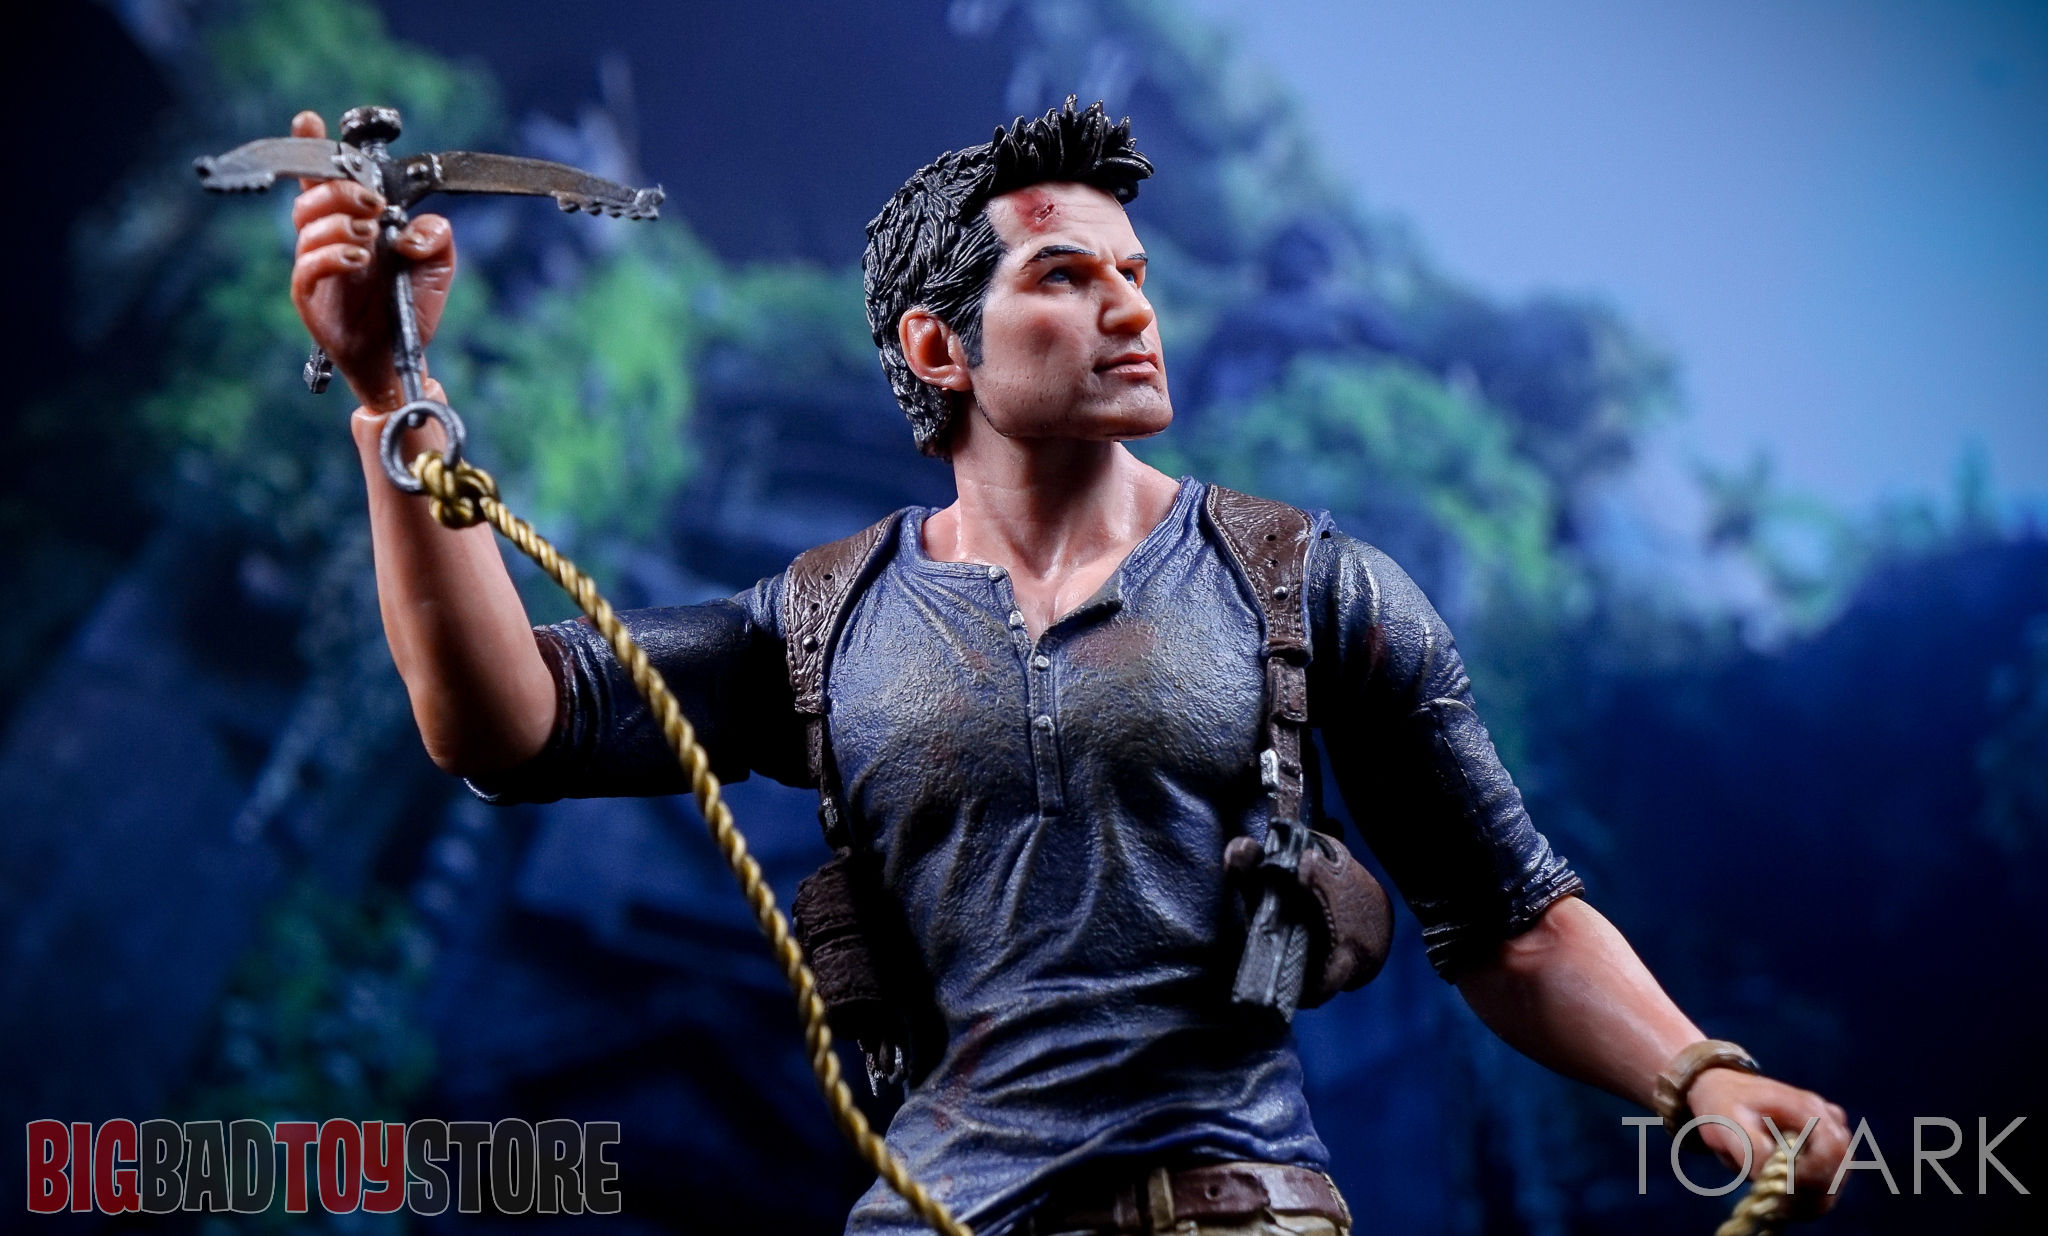 http://news.toyark.com/wp-content/uploads/sites/4/2016/09/NECA-Uncharted-4-Nathan-Drake-044.jpg